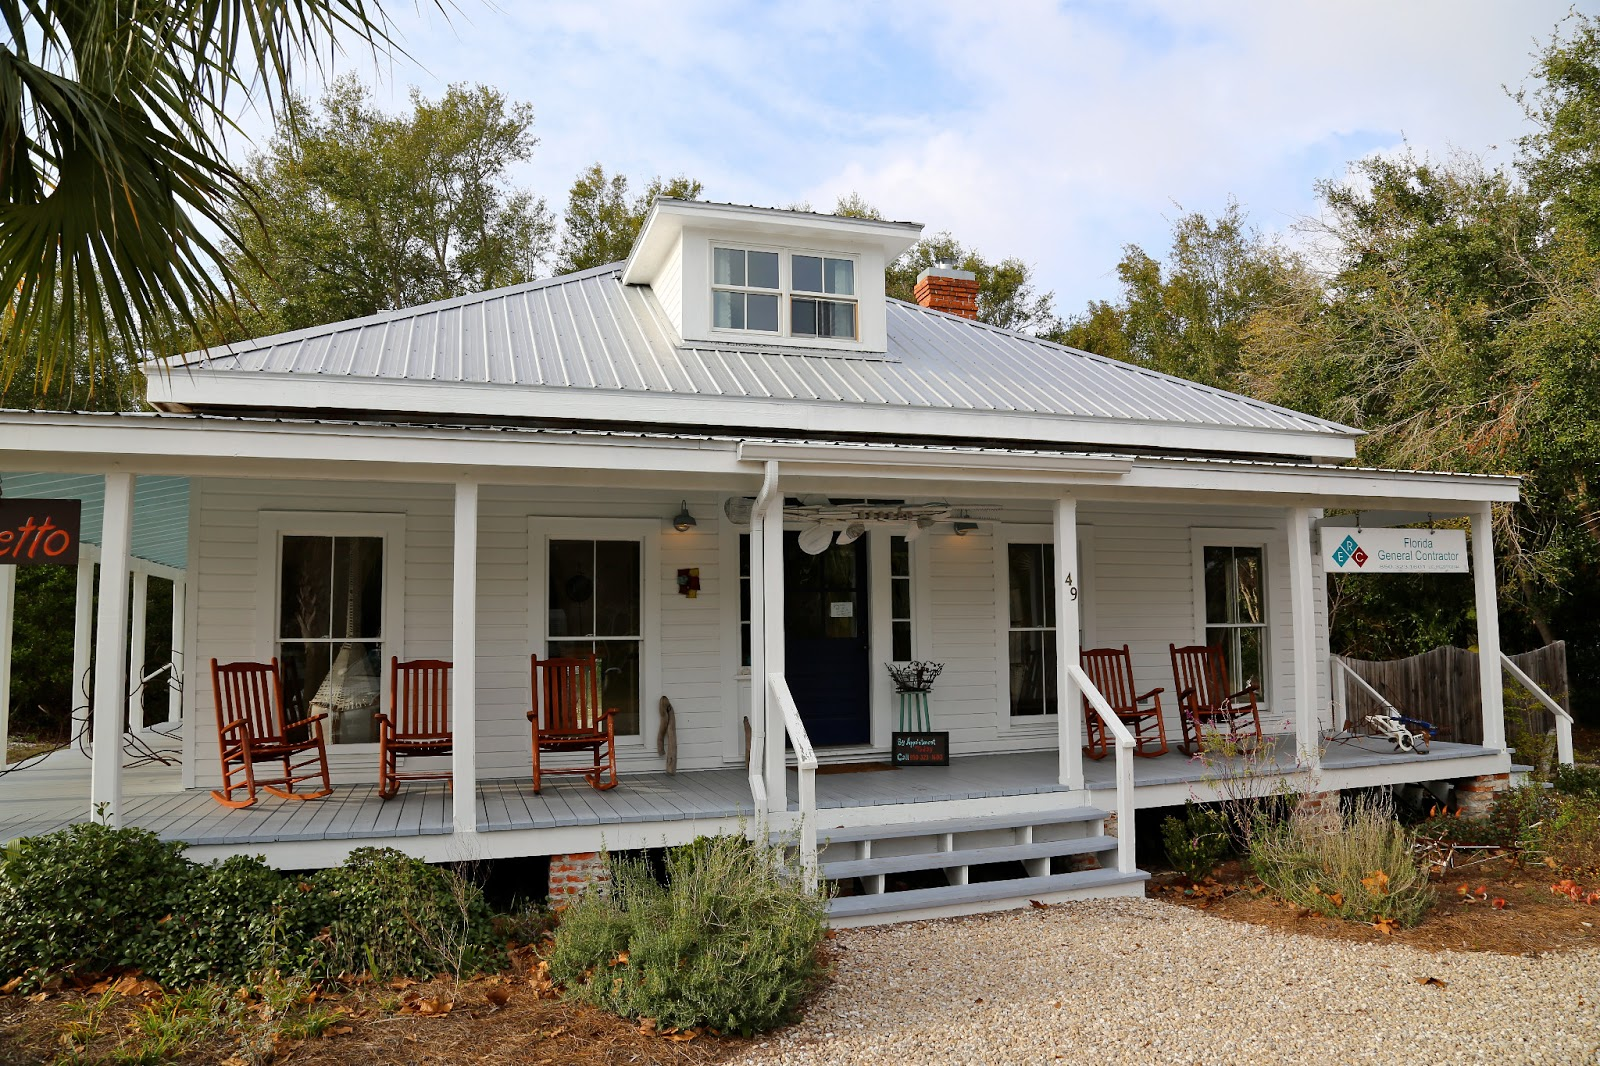 Sweet southern days apalachicola florida for Florida cracker house plans wrap around porch